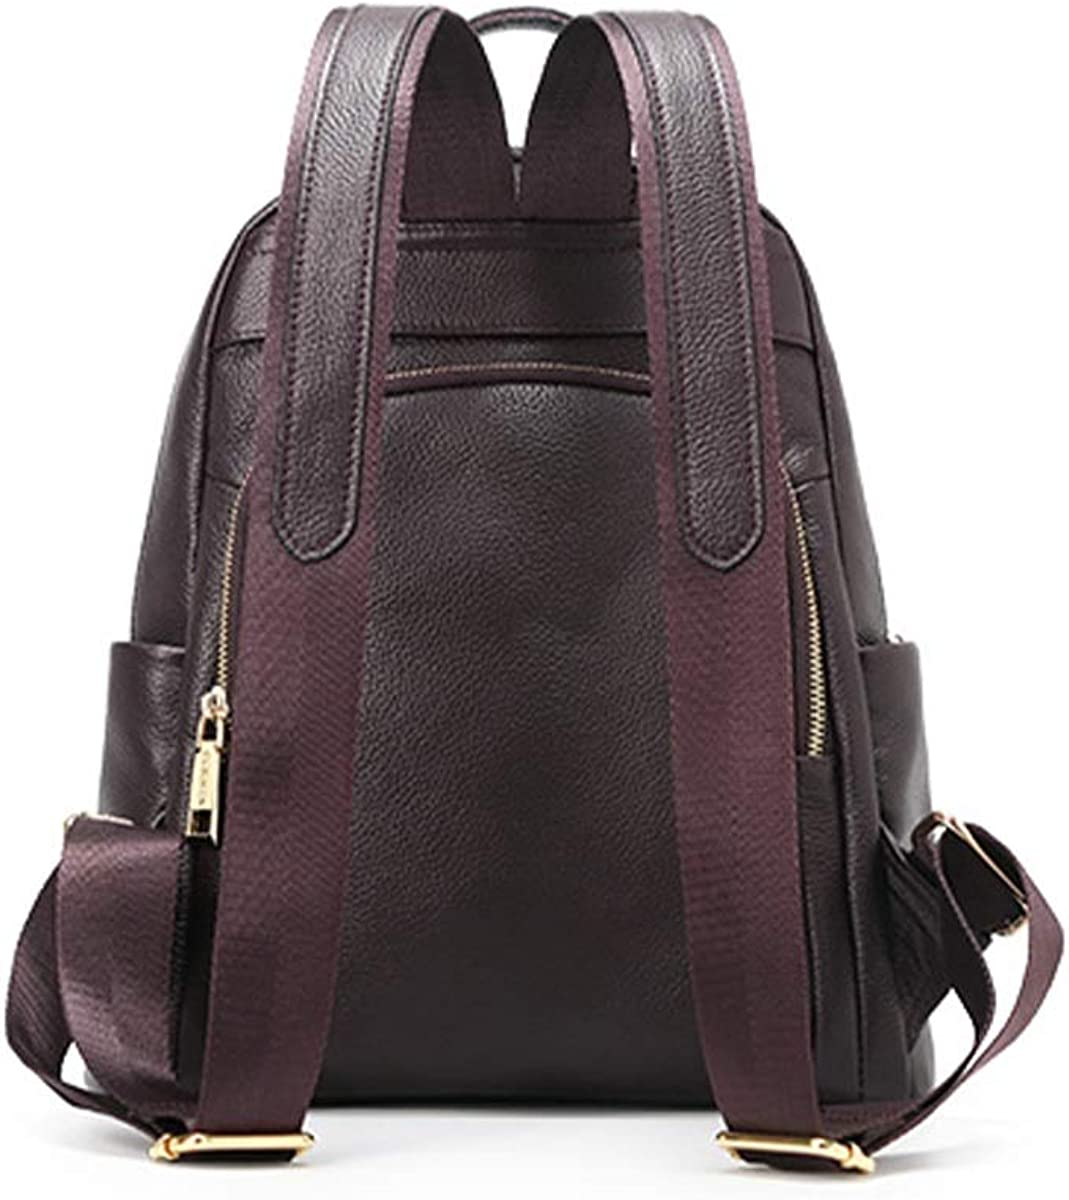 Kalmar Backpack Grils 2019 New Morden Leather Suede Leather Soft Leather Large Capacity Wild Ladies Backpack Nappy Tote Bags for Mom /& Dad Large Capacity Color : Brown, Size : Small